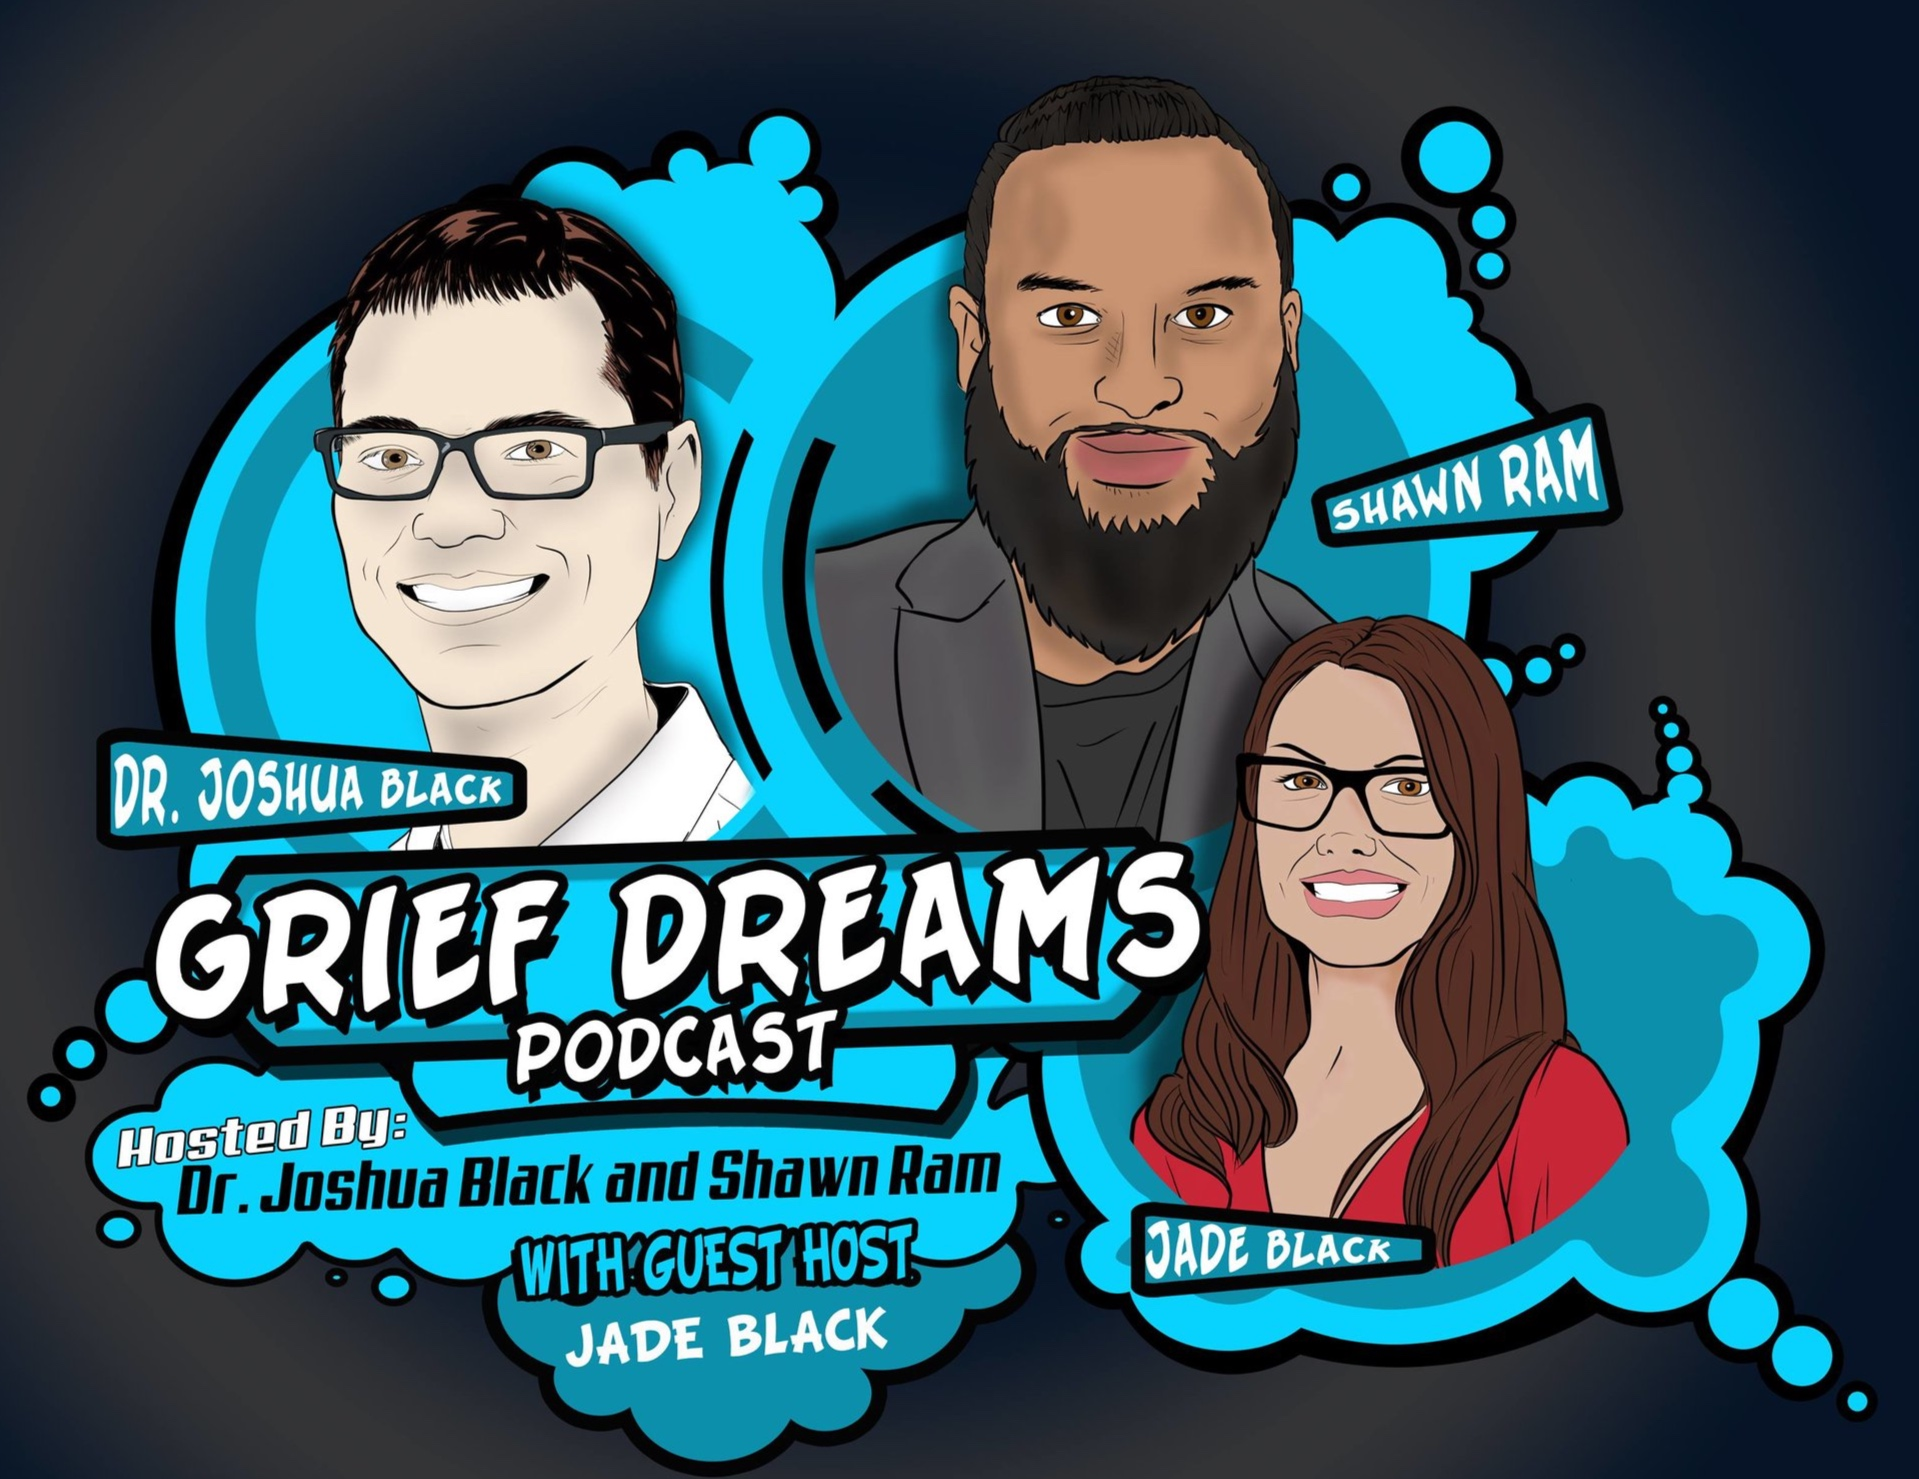 An entertaining, enlightening, and always supportive podcast hosted by Dr. Joshua Black and Shawn Ram.    When Joshua or Shawn are not around, Jade Karling Black frequently guest hosts.    On the podcast various guests talk about their life, loss, and any grief dreams they had.